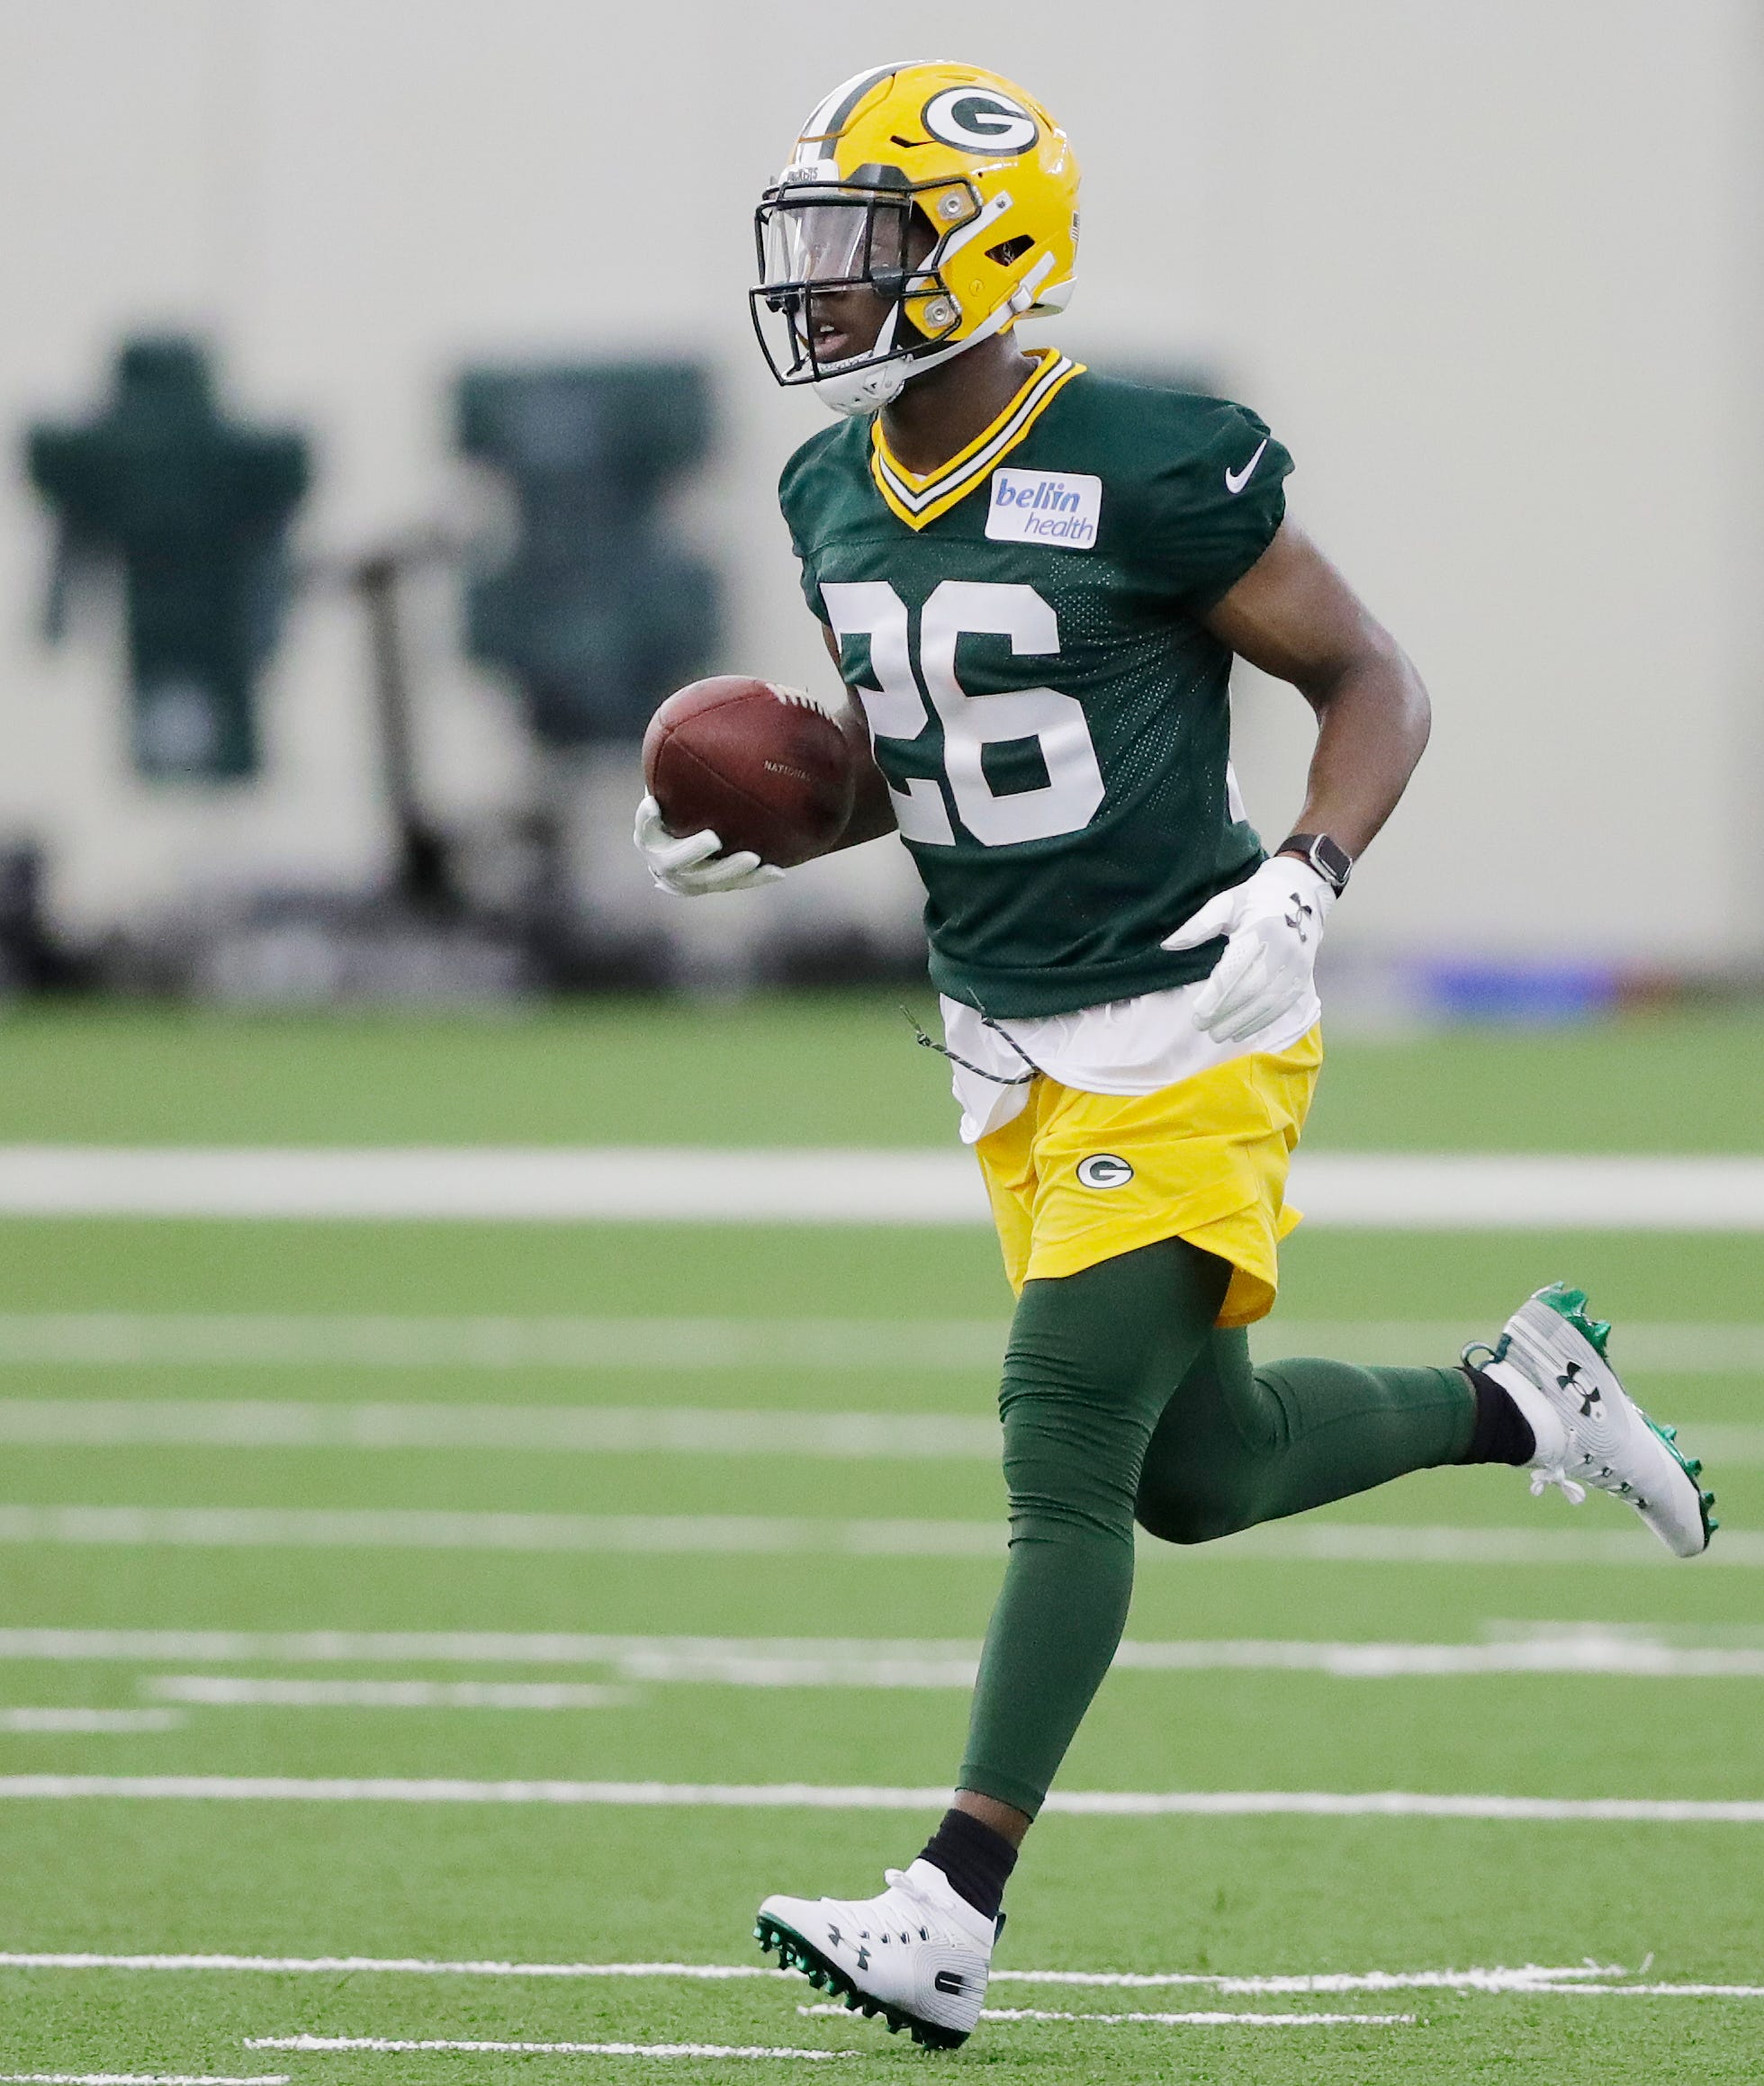 Green Bay Packers safety Darnell Savage (26) during practice at rookie minicamp at the Don Hutson Center on Friday, May 3, 2019 in Ashwaubenon, Wis. The Packers recently installed a new playing surface in the Don Hutson Center. Adam Wesley/USA TODAY NETWORK-Wis